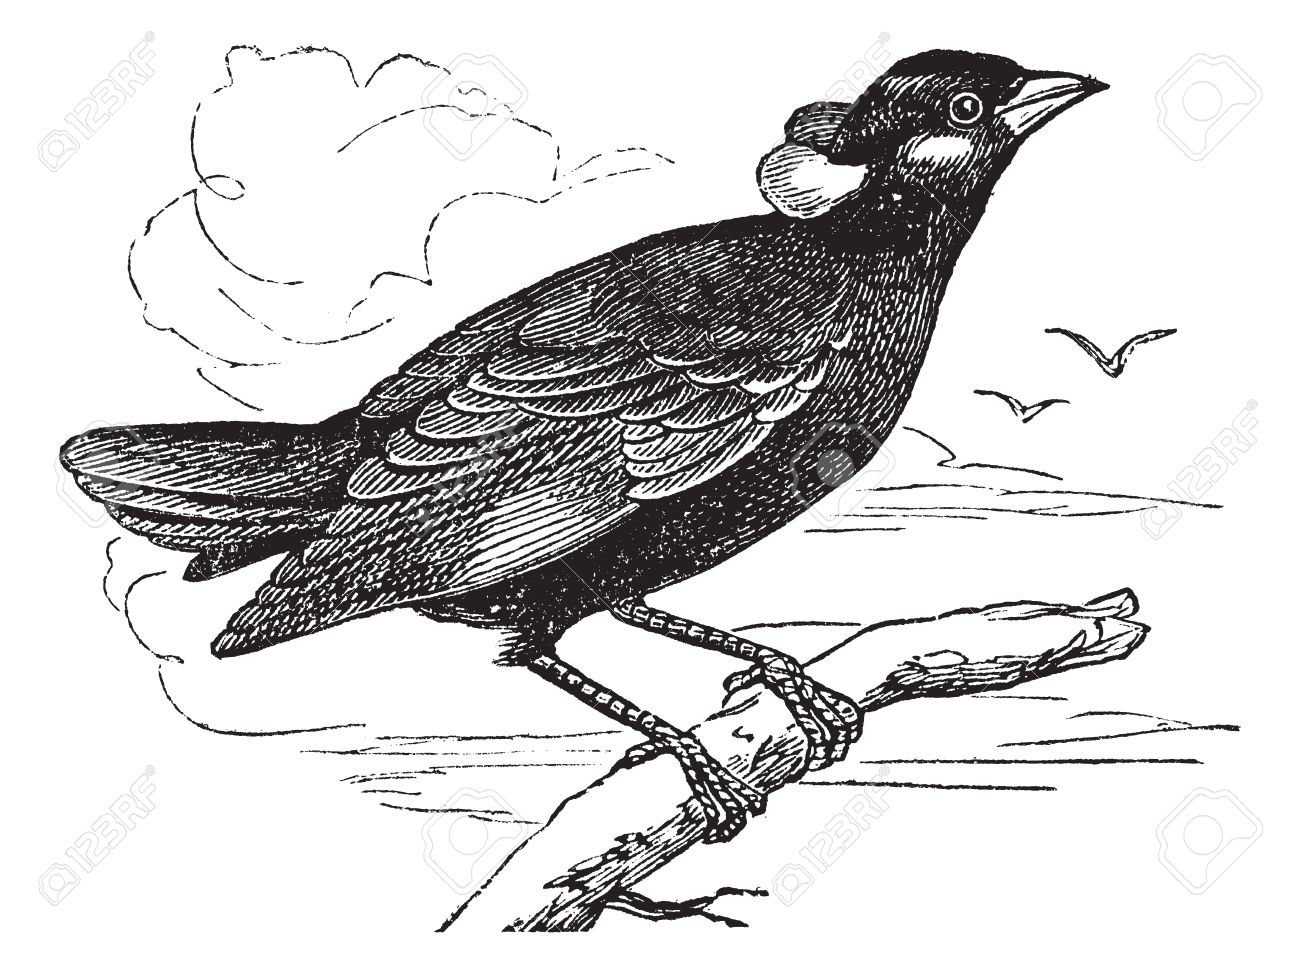 Common Hill Myna or Gracula religiosa or Mynah or Hill Myna, vintage engraving. Old engraved illustration of Common Hill Myna waiting on a branch and two other birds flying in the background. Stock Vector - 13770303